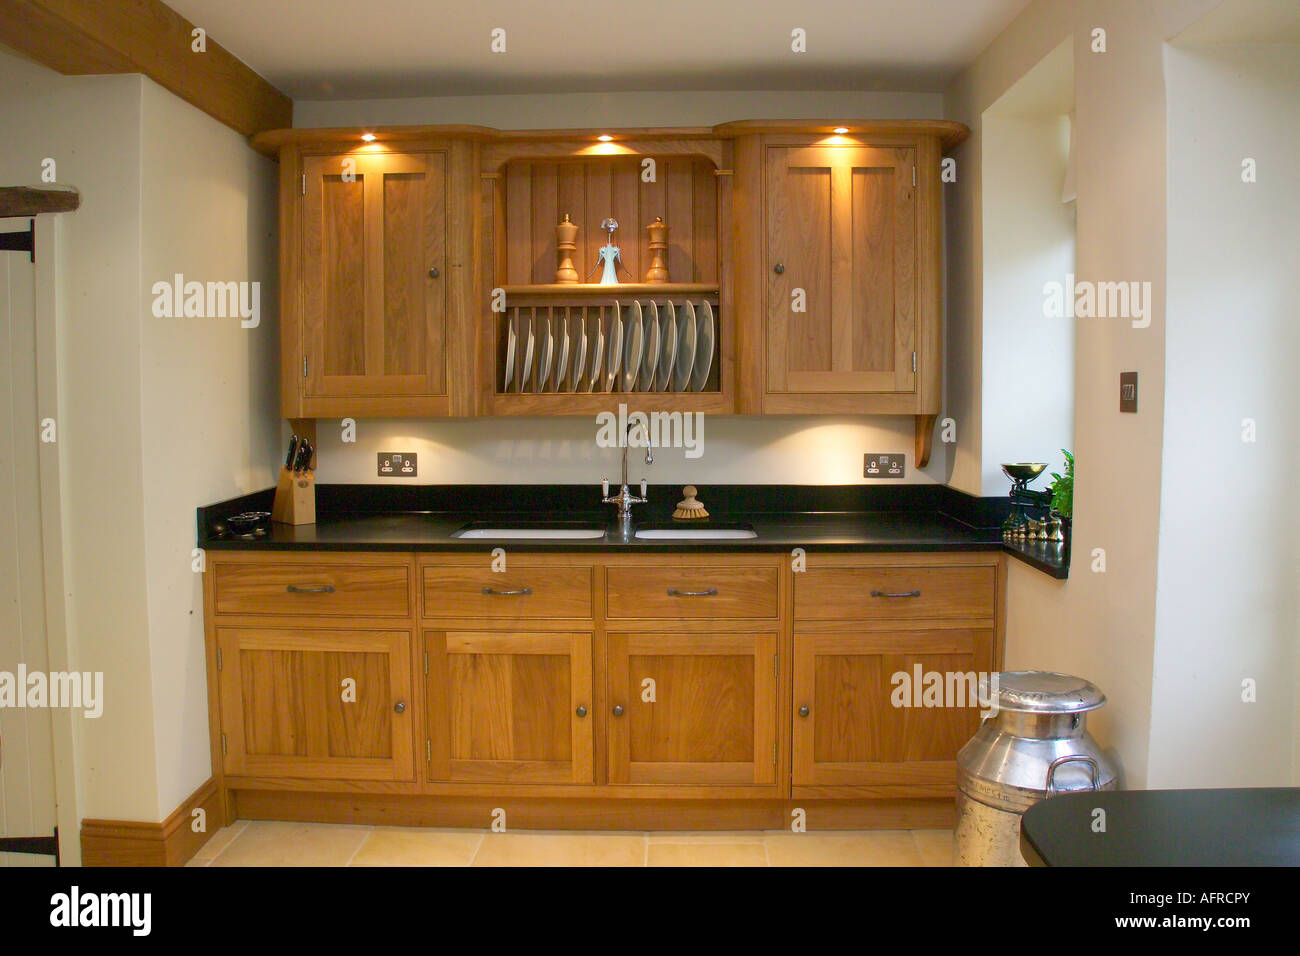 Lighting Above Wooden Kitchen Cupboards With Built In Sink In Modern Kitchen